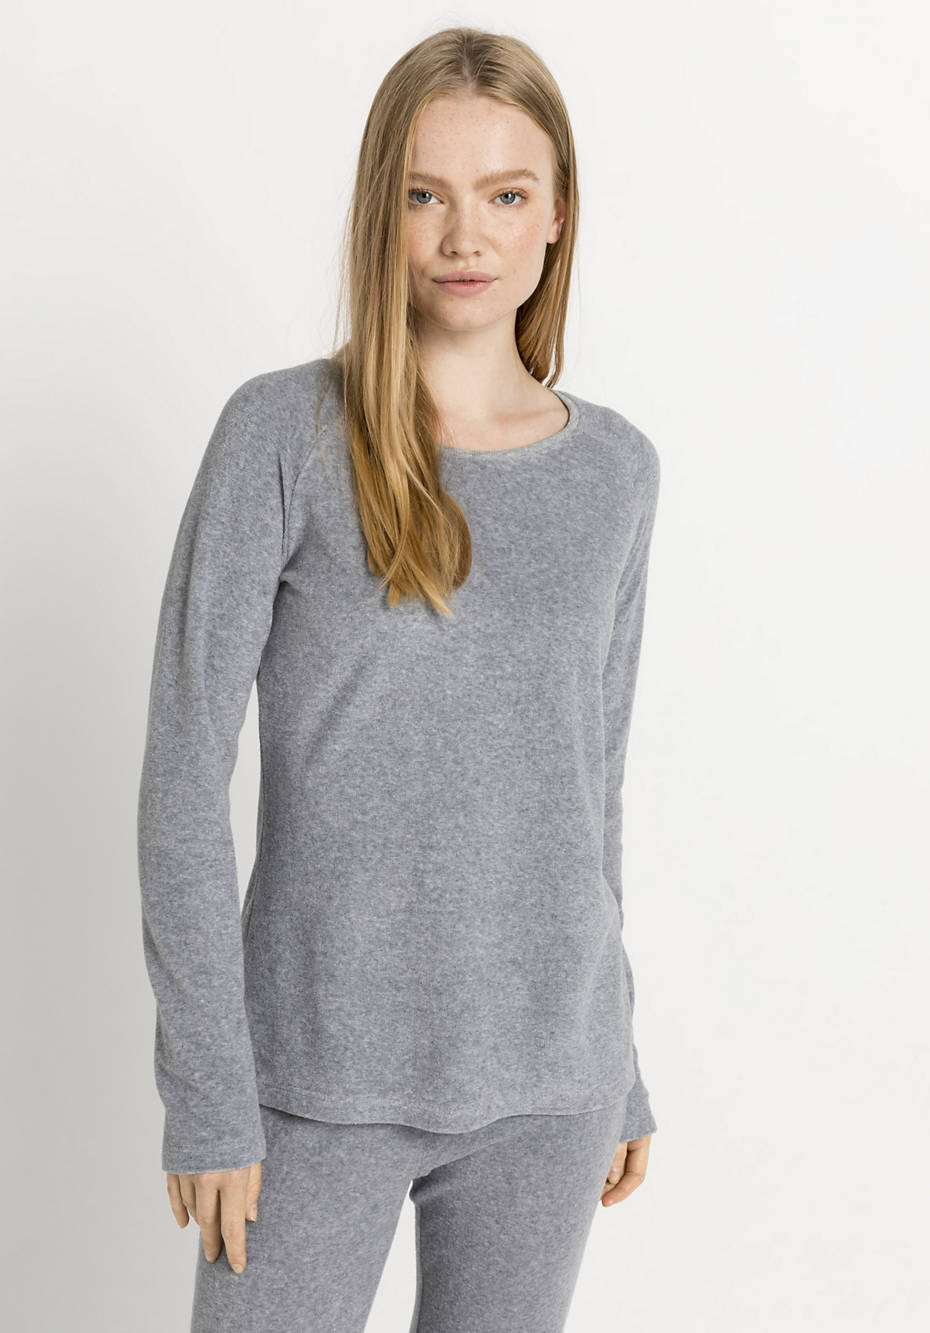 Terrycloth shirt made from pure organic cotton